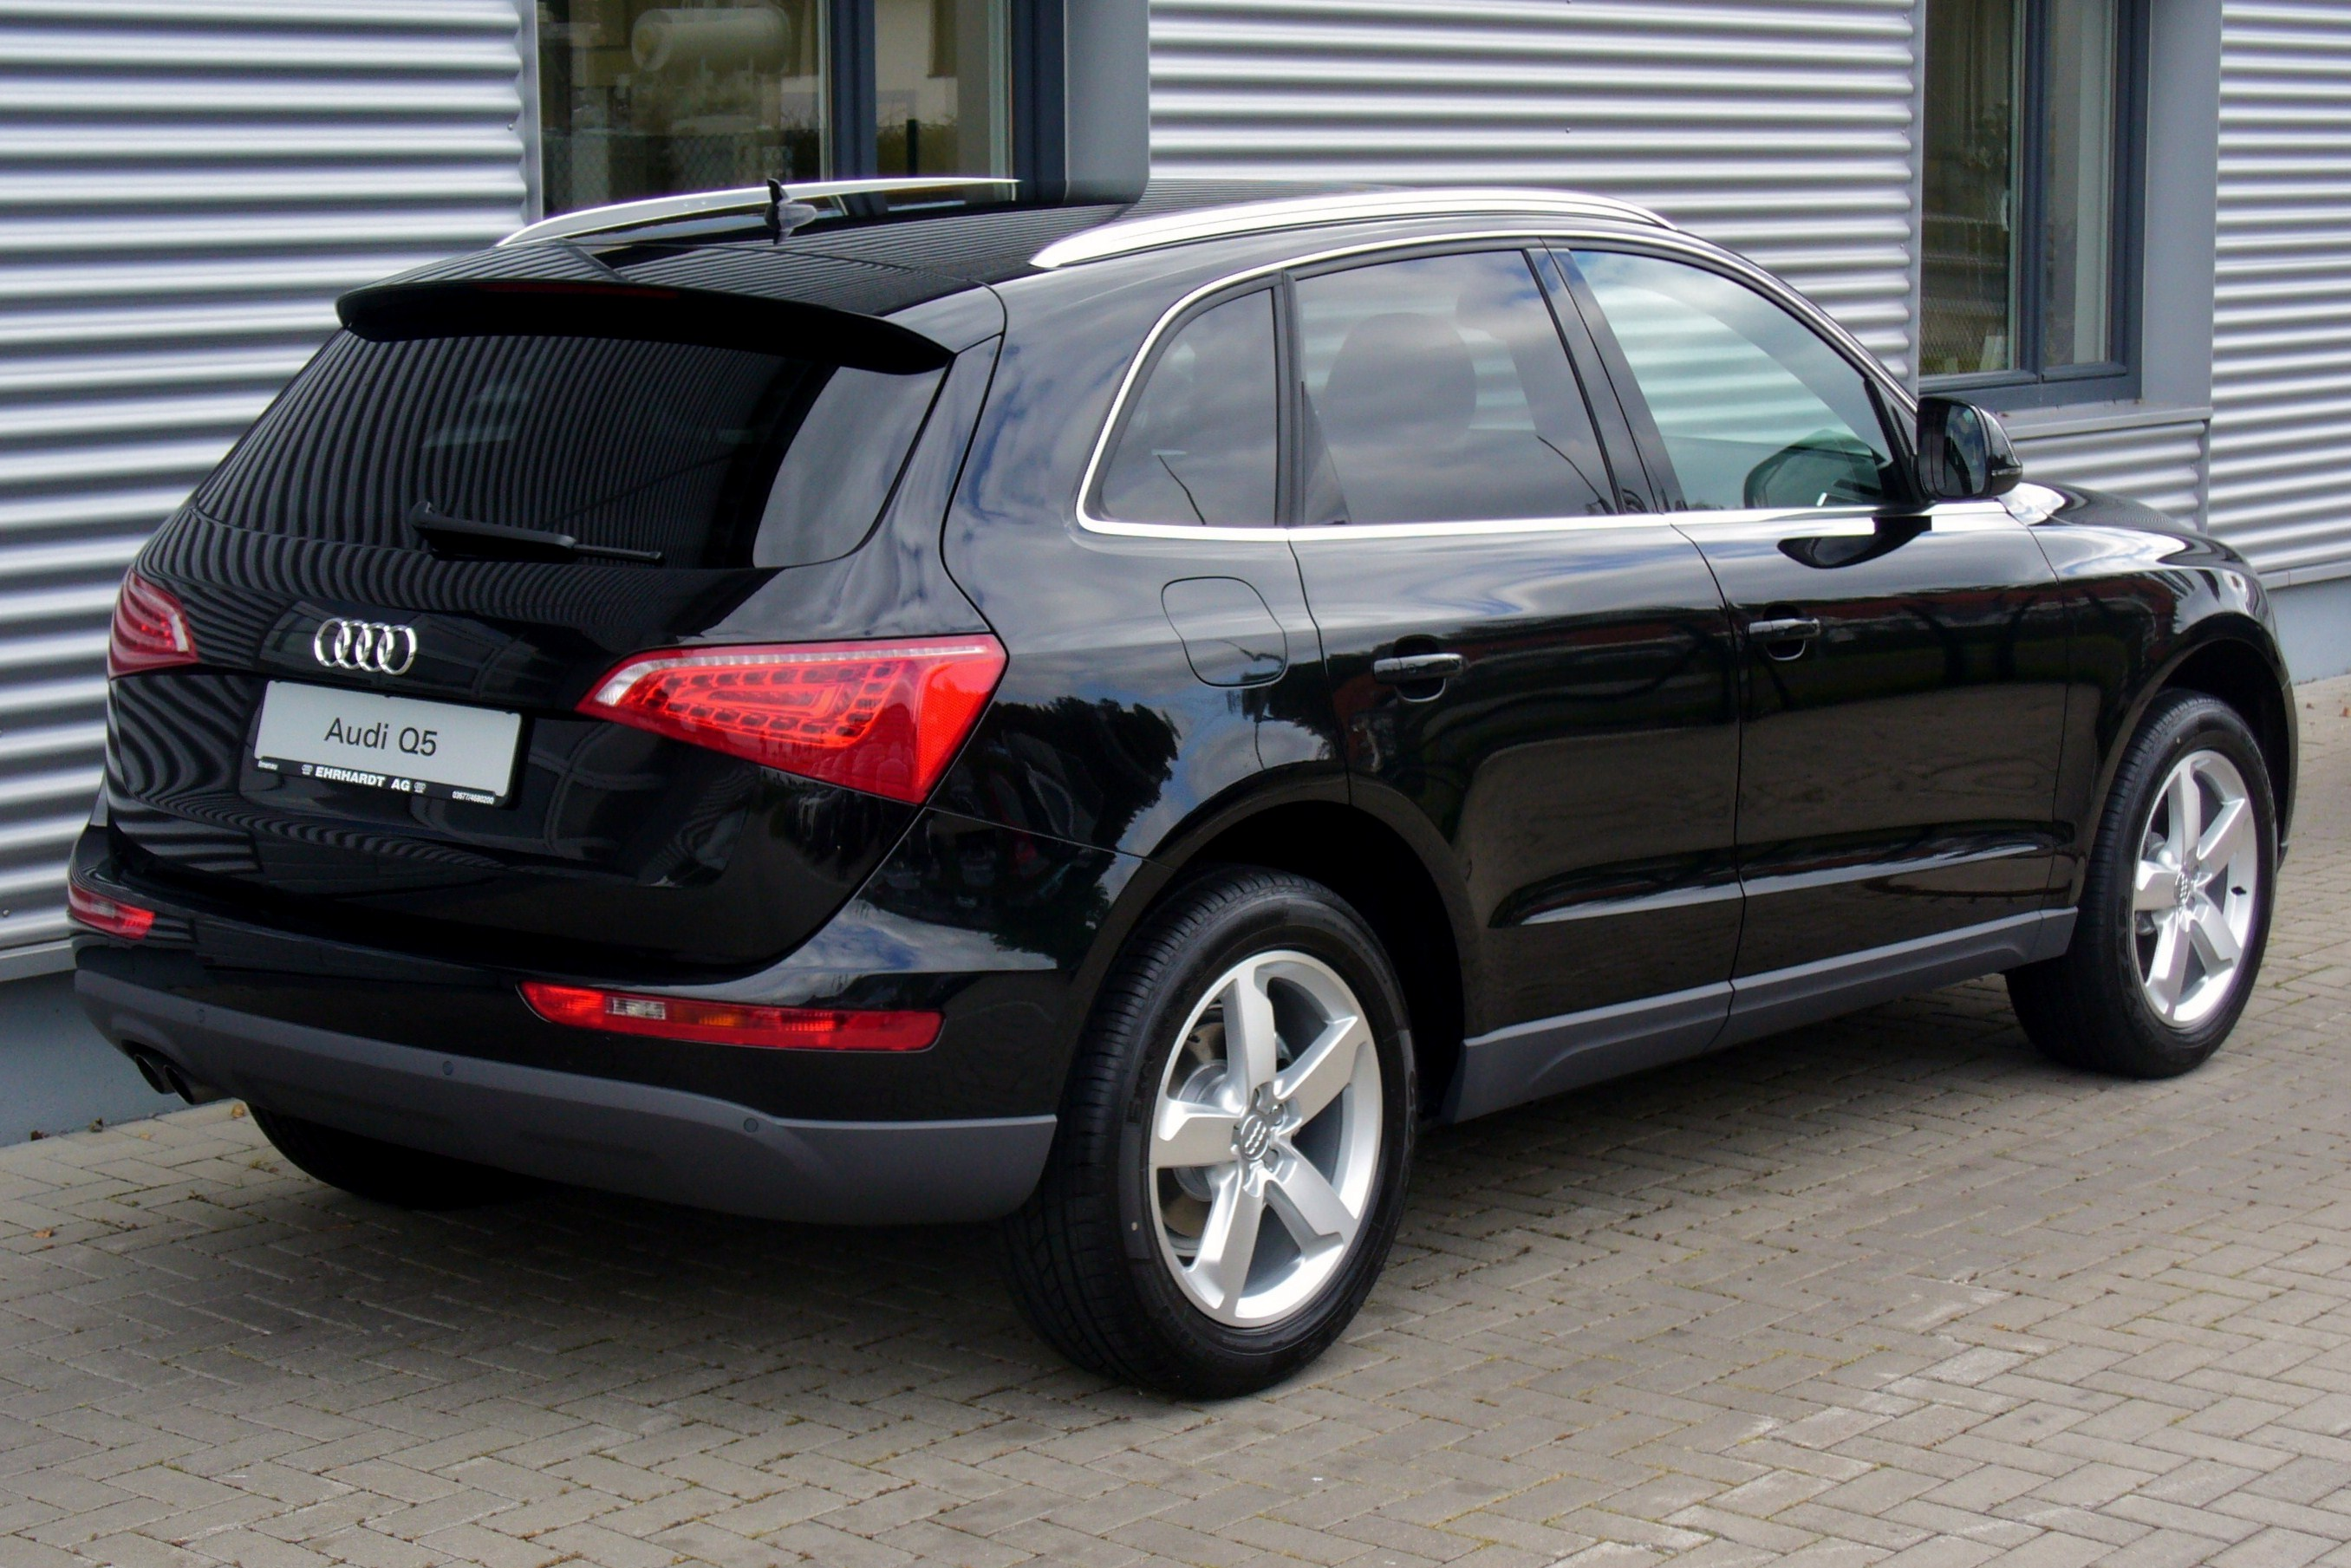 file audi q5 2 0 tdi quattro s tronic 30 jahre quattro phantomschwarz heck jpg wikimedia commons. Black Bedroom Furniture Sets. Home Design Ideas